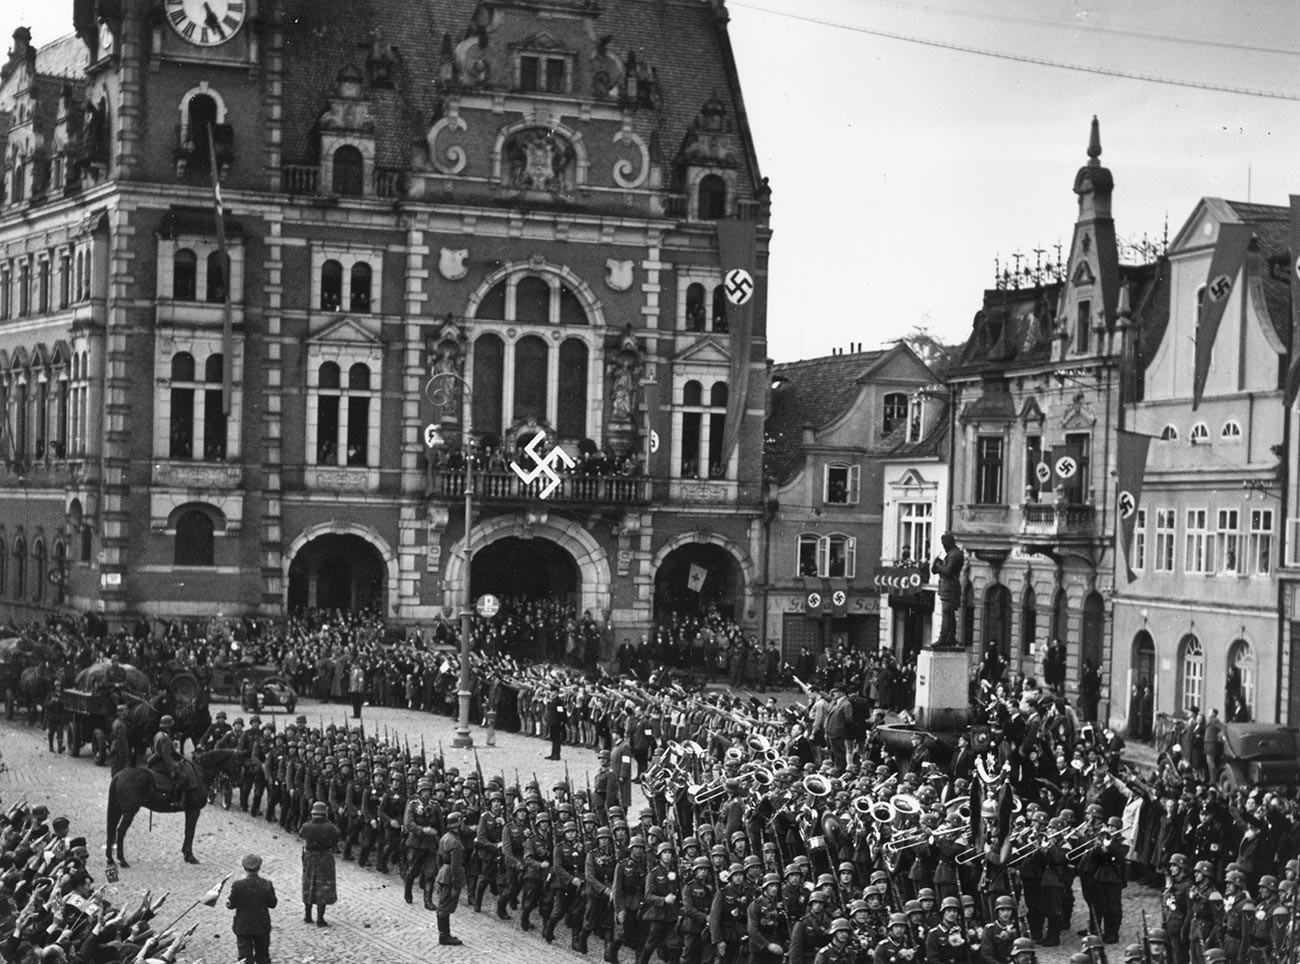 Troops of the German army march into Czechoslovak territory and parade in the town square at Rumburk, which has been decorated with swastika banners.